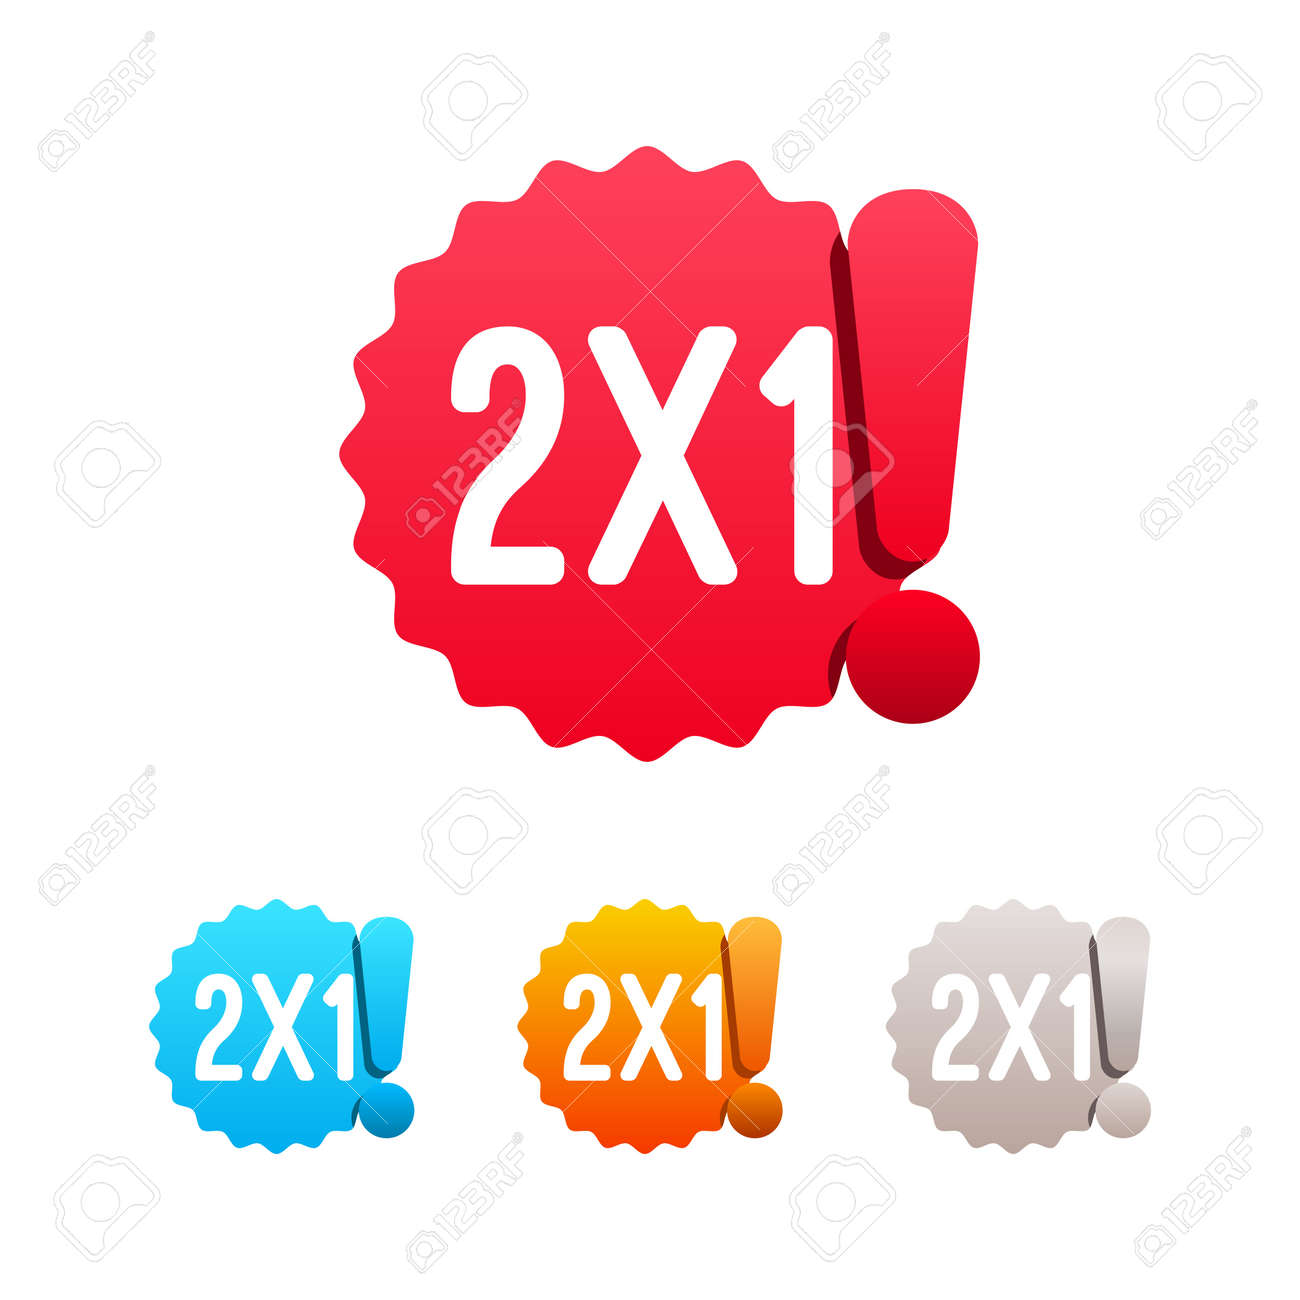 2x1 offer labels royalty free cliparts vectors and stock